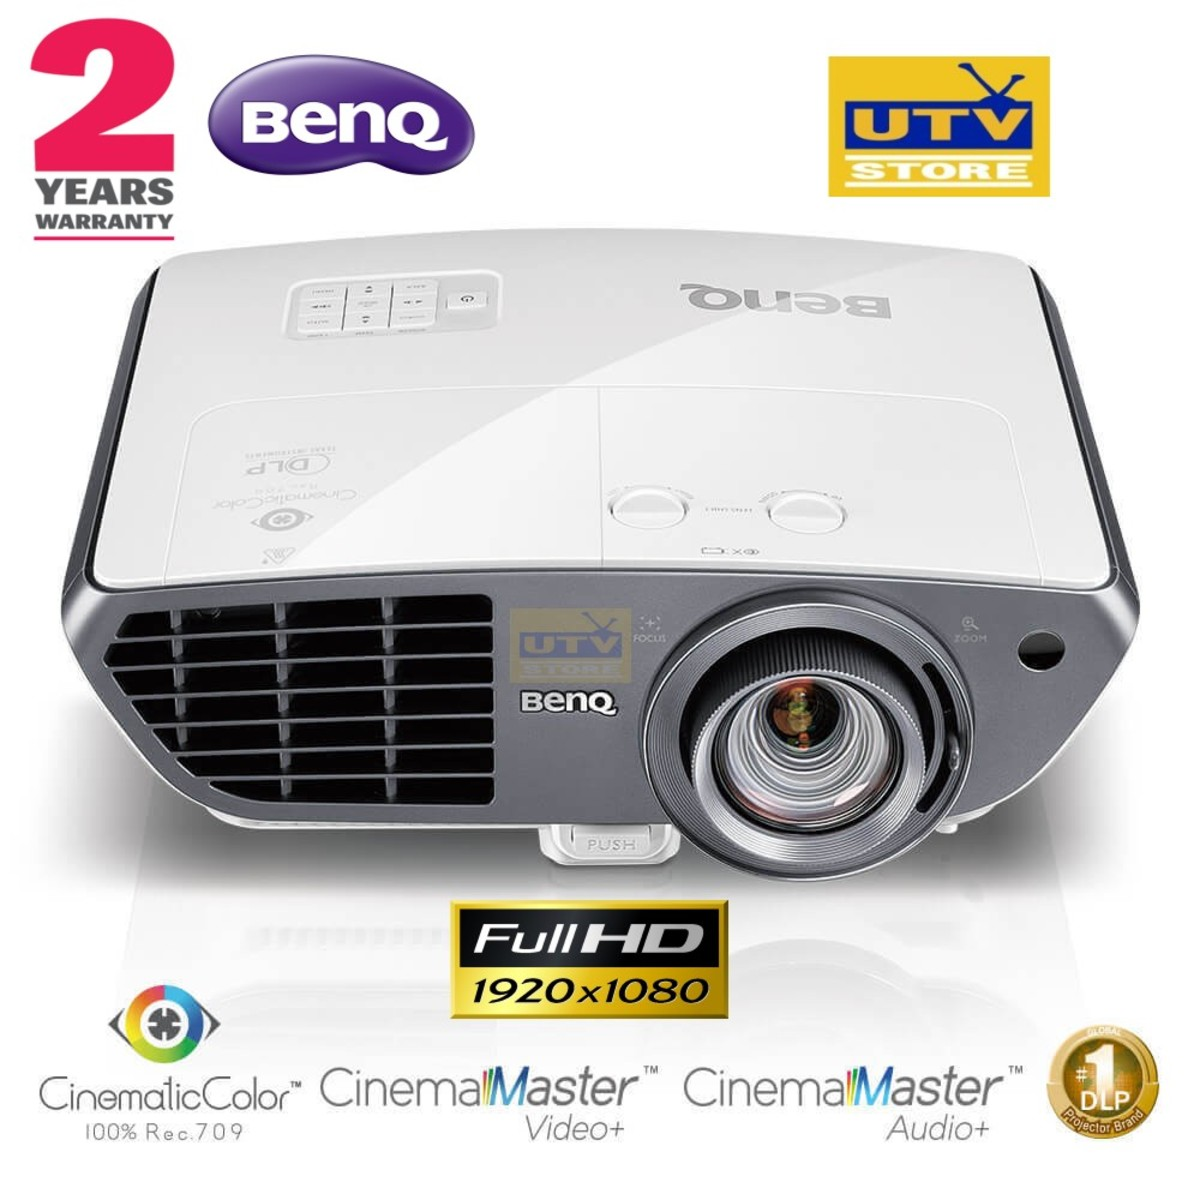 W3000 Home Cinema Projector with 100% Rec.709,Video Enhancer (2 years warranty)